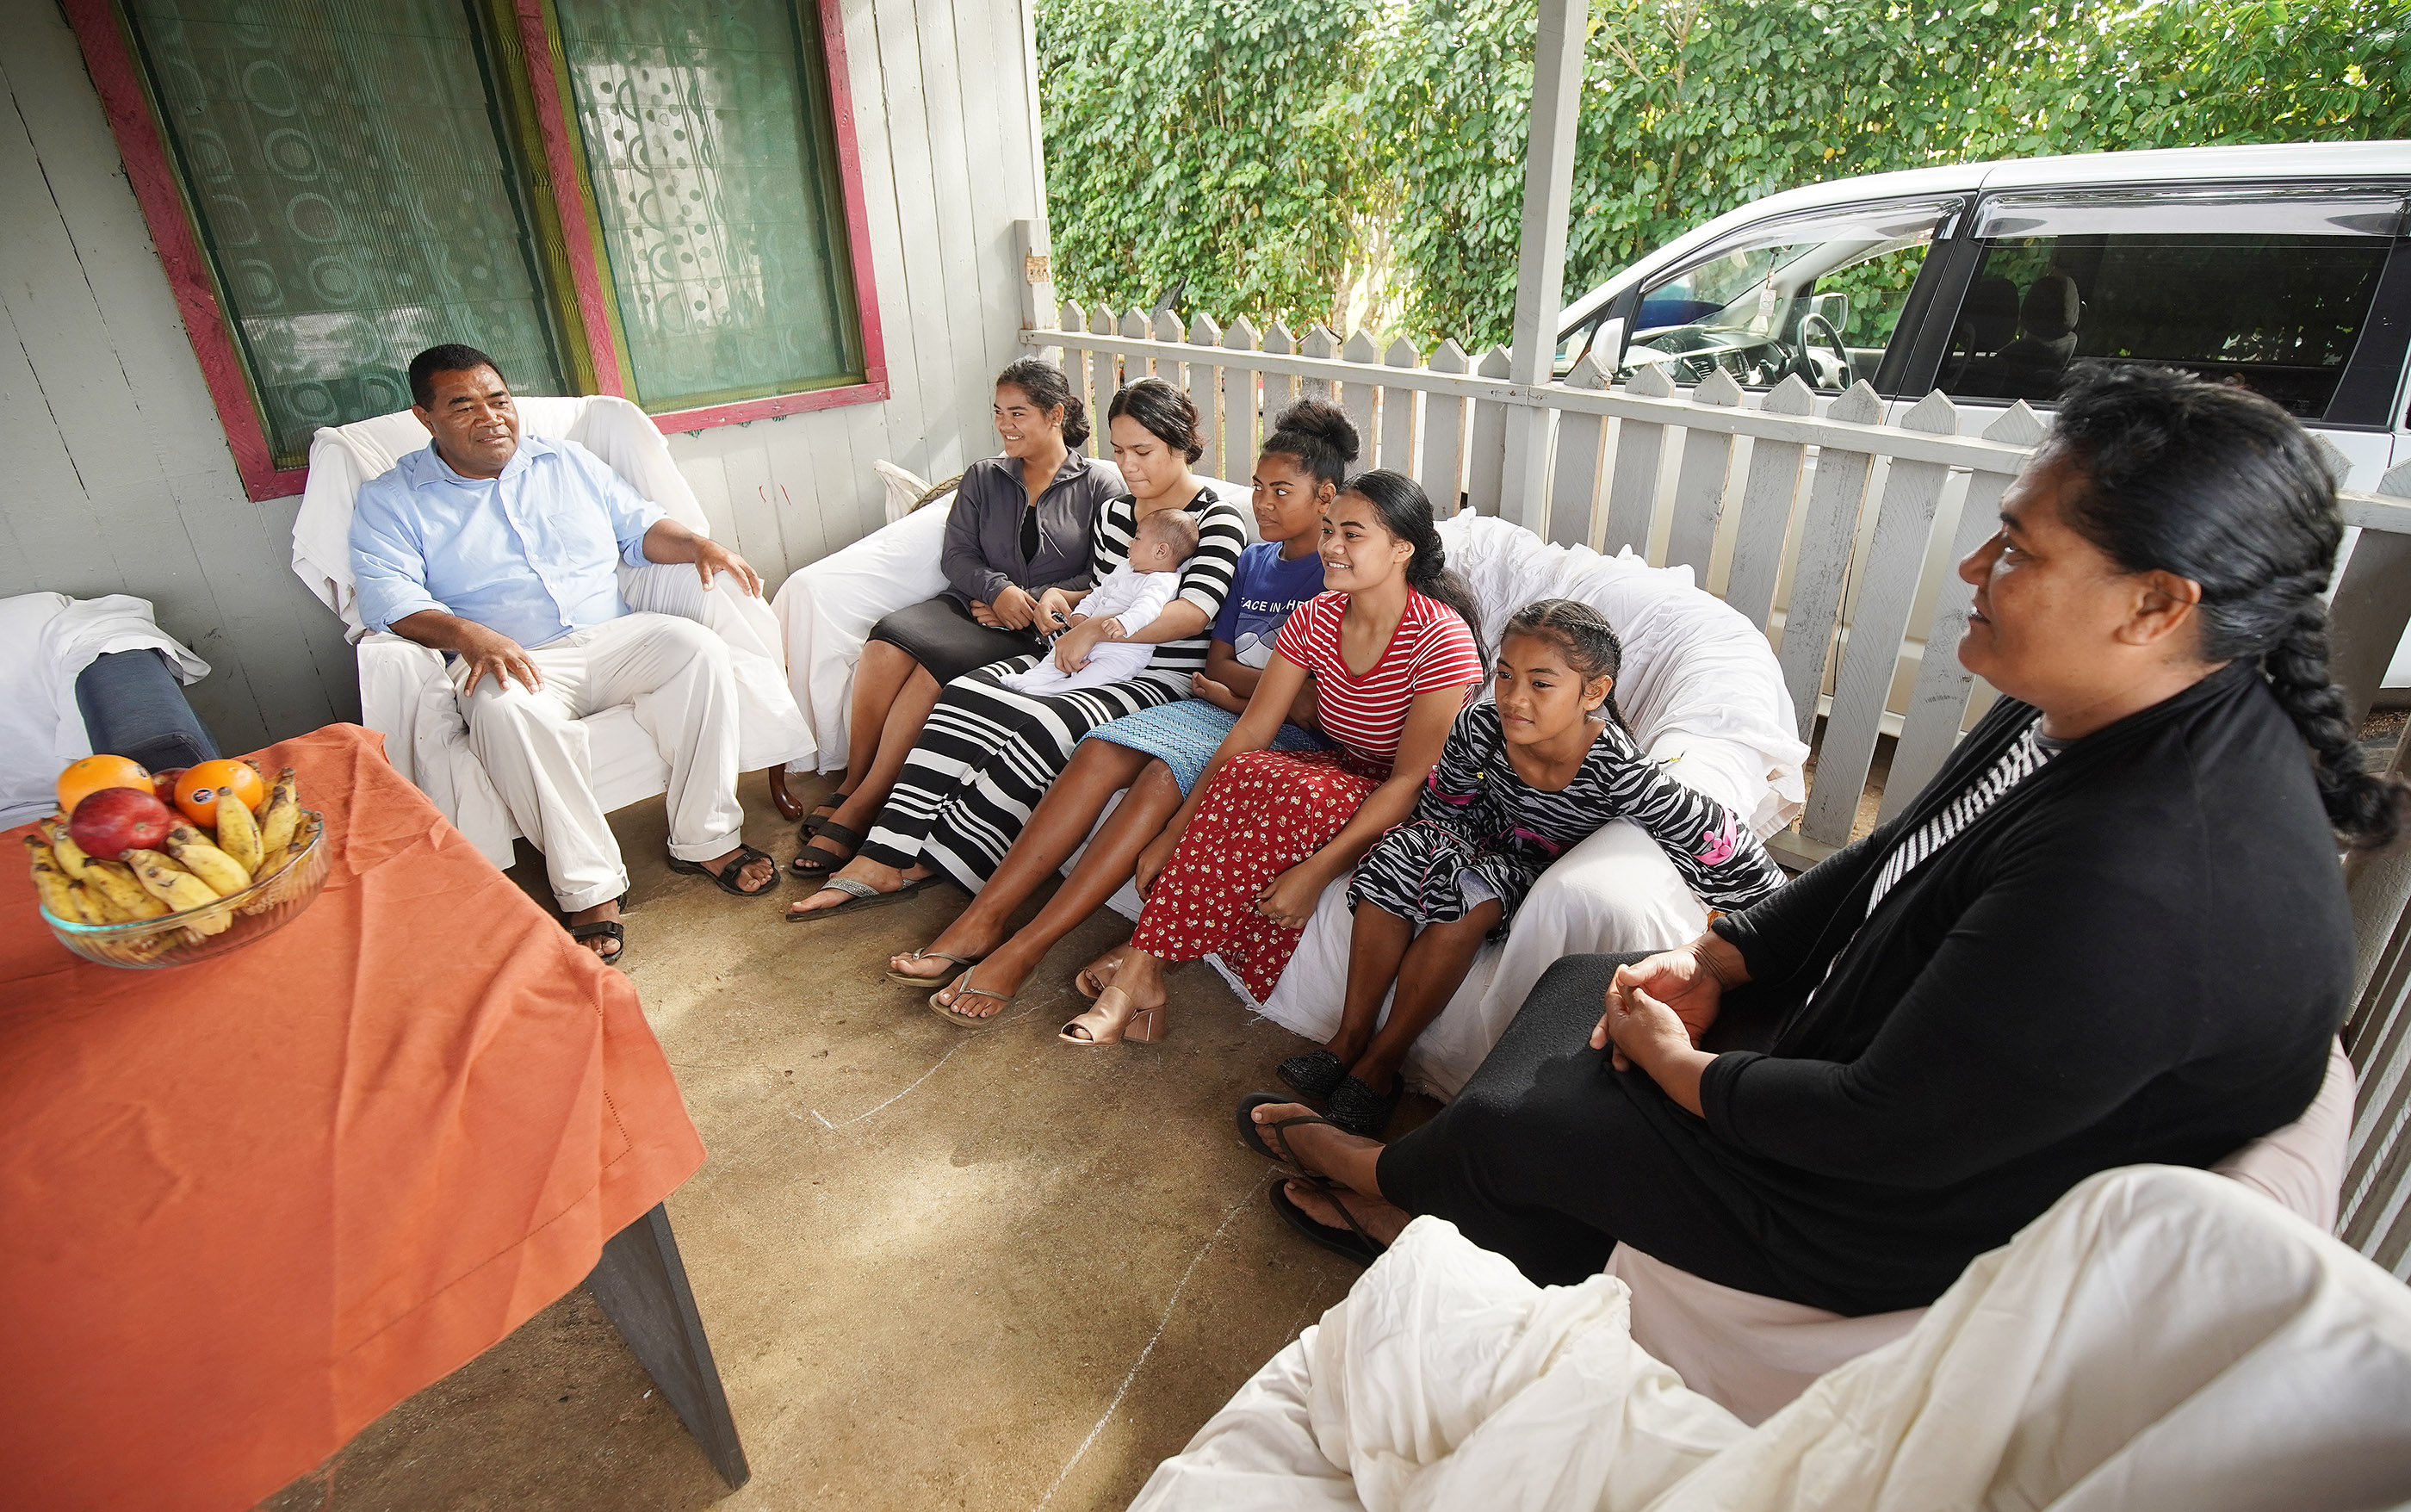 Tohiminiti Latu talks with some of his children at their his home in Tonga on May 23, 2019. Latu is bishop of his ward and has 10 children and one grandchild.